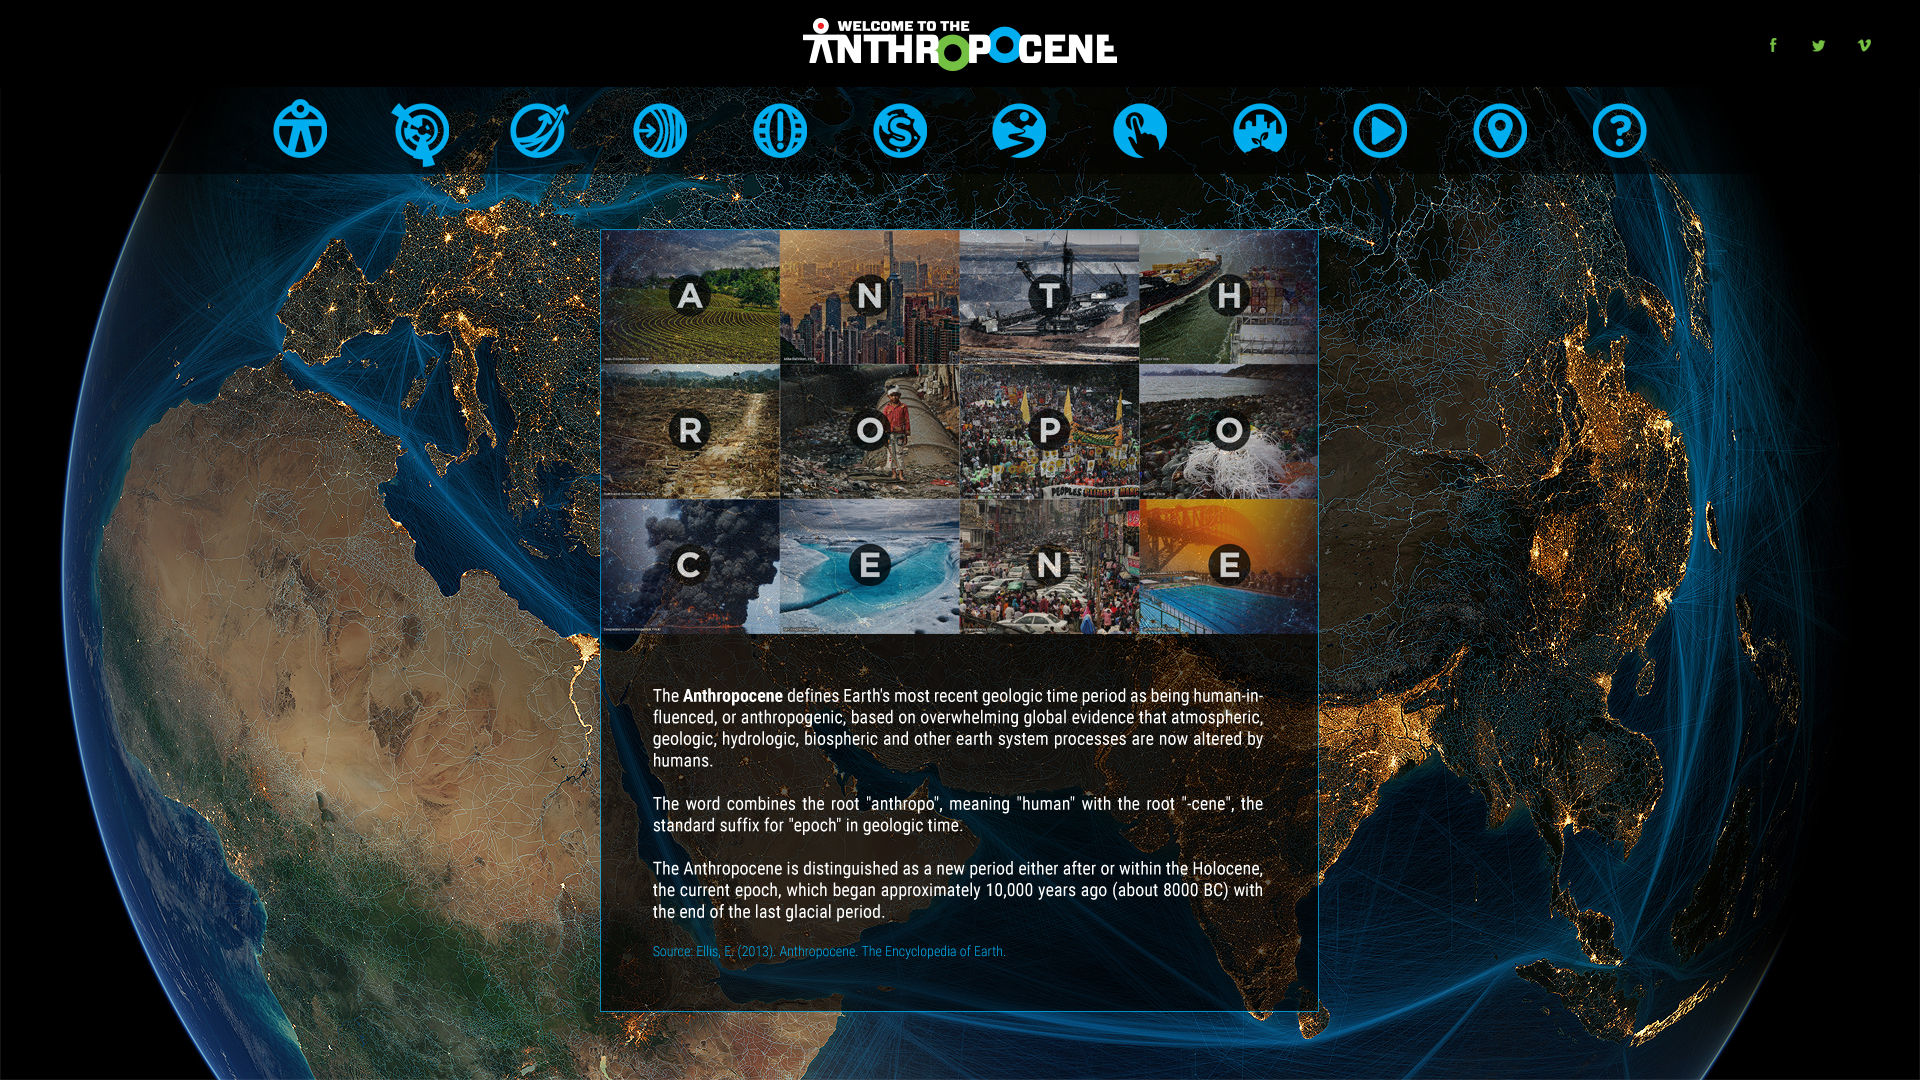 Anthropocene.info, a website created with the Stockholm Resilience Centre, CSIRO and Future Earth